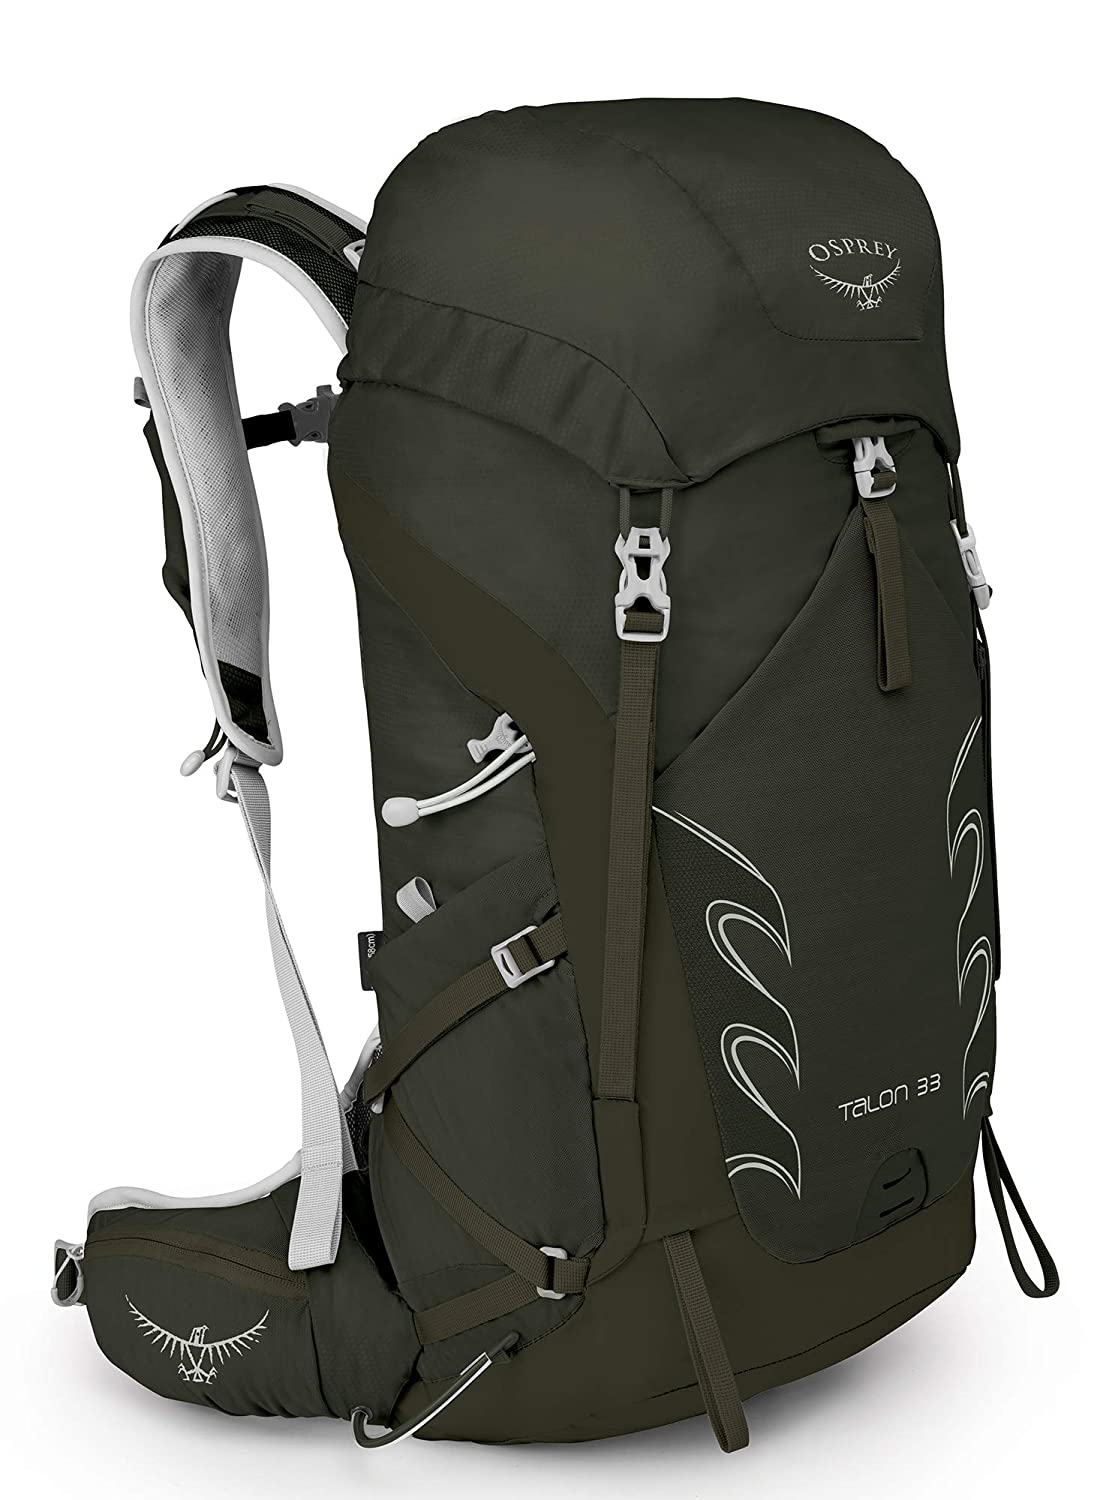 Osprey Packs Talon 33 Men s Hiking Backpack